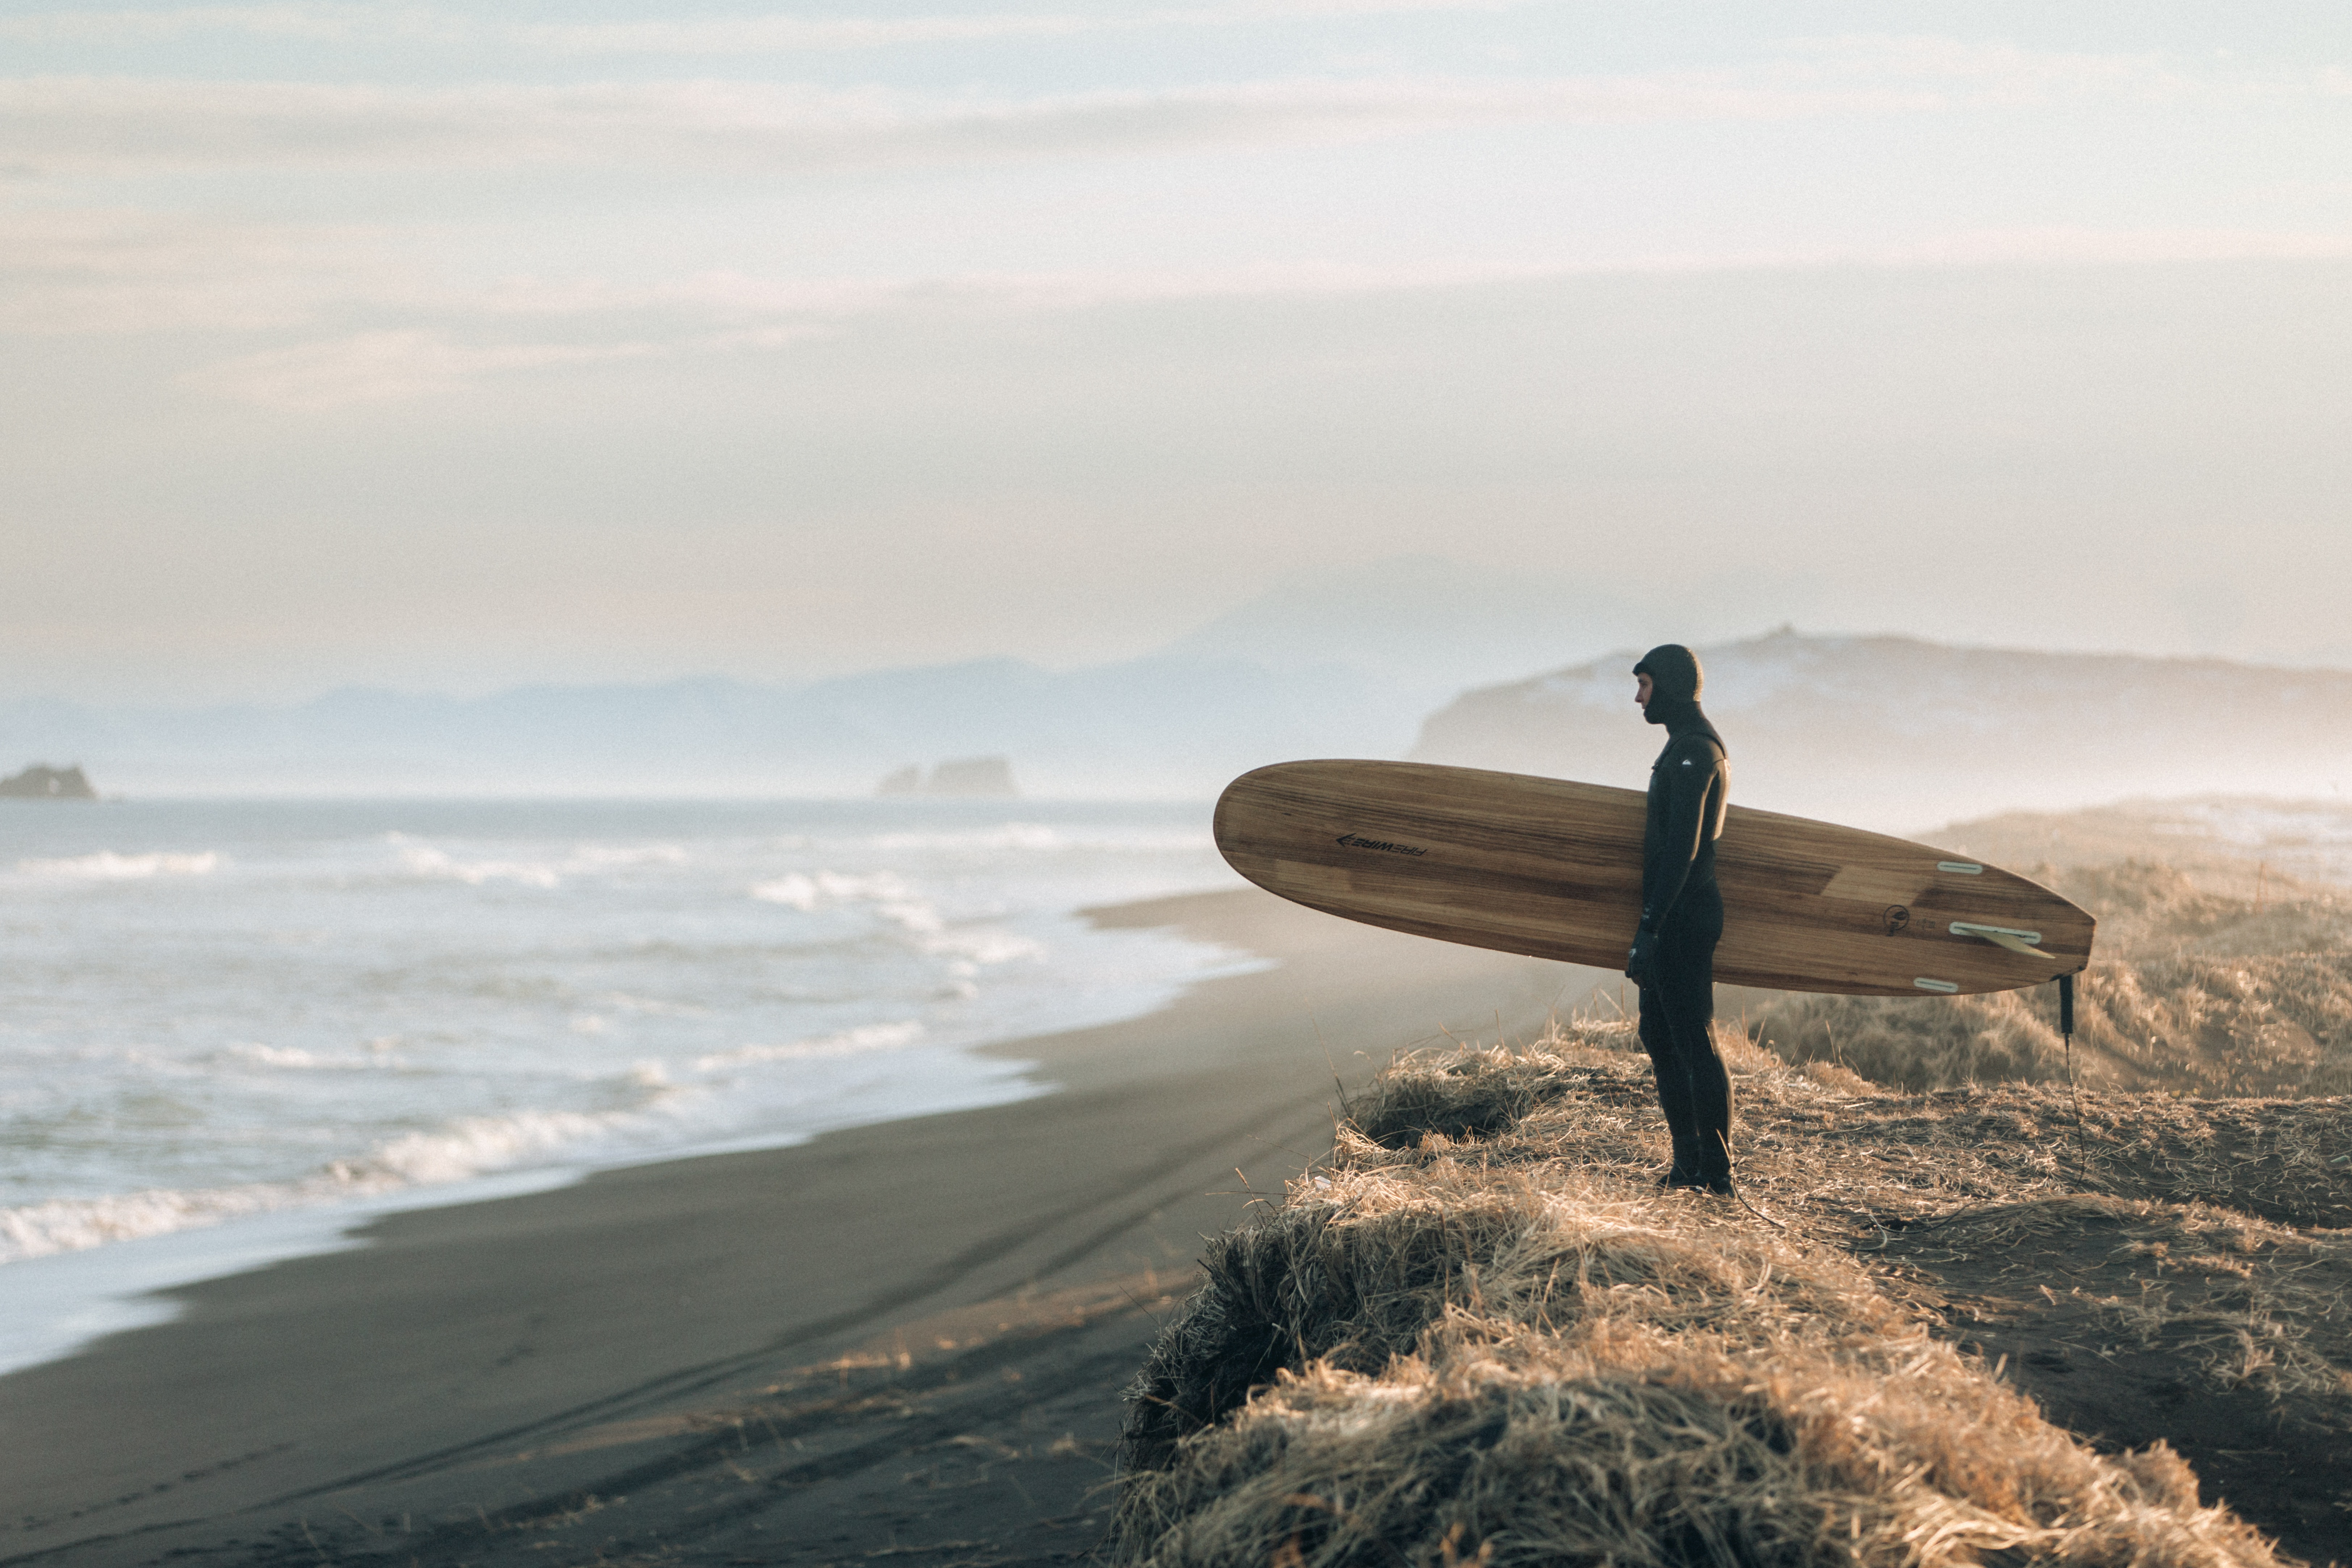 A man holding a surfboard and looking at the sea